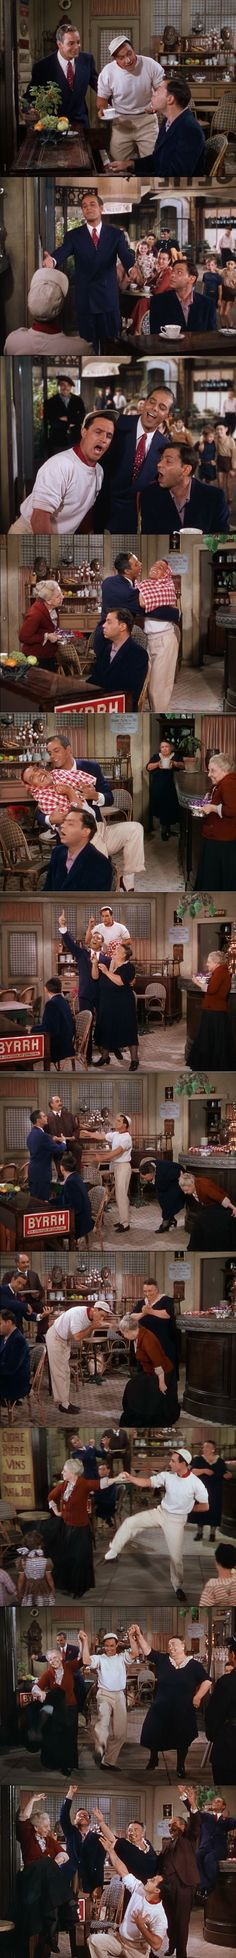 An American in Paris 1951 Gene Kelly as Jerry Mulligan, Oscar Levant as Adam Cook (playing the piano), and Georges Guetary as Henri Baurel in the first long musical-dance sequence at the cafe filled with goofiness, something that was totally different in a musical just then.